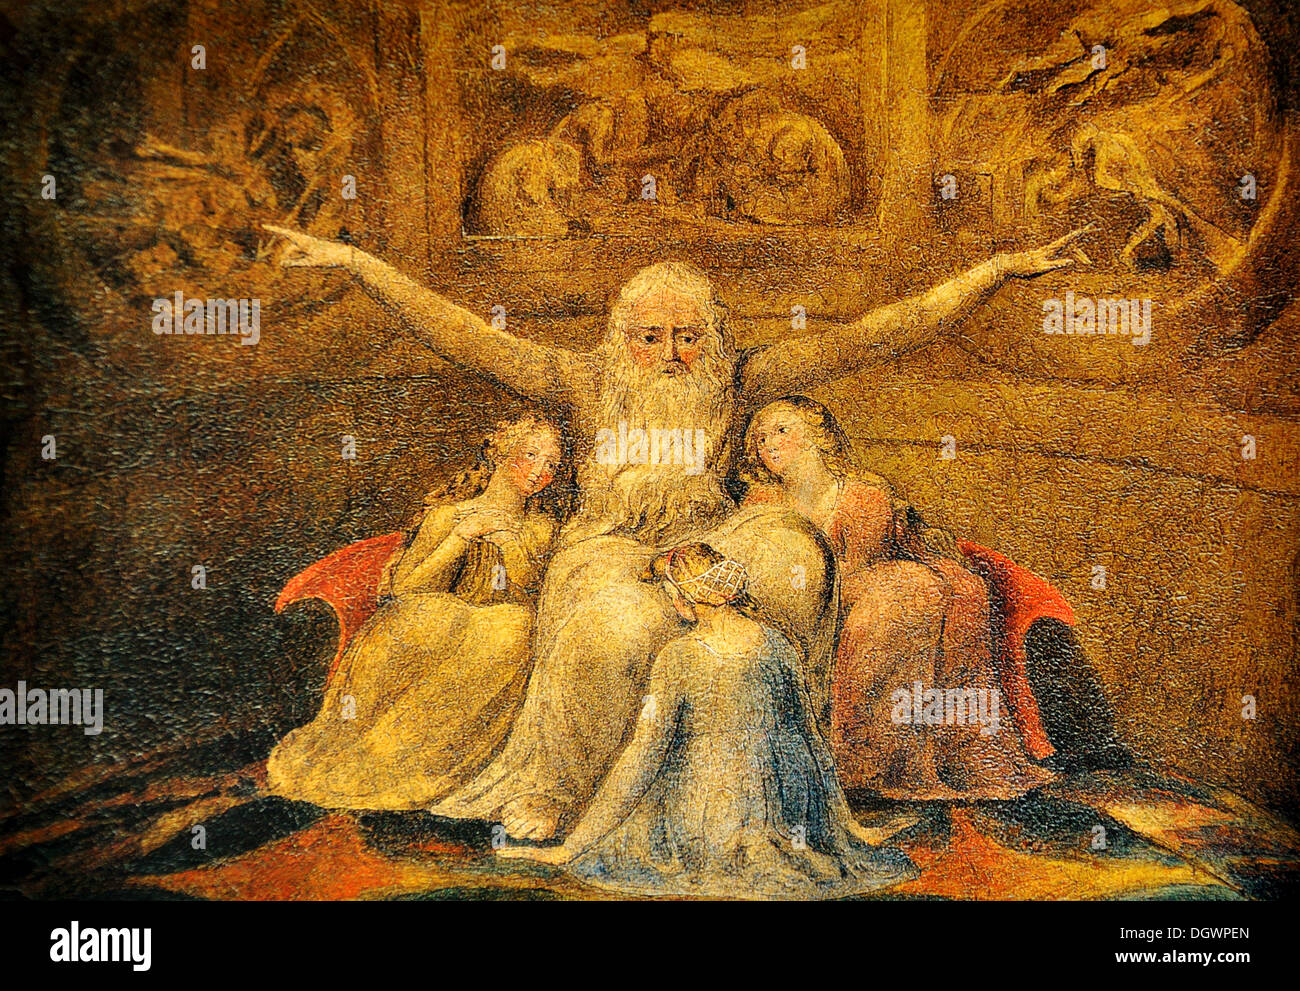 Job and his Daughters - by William Blake, 1800 - Stock Image